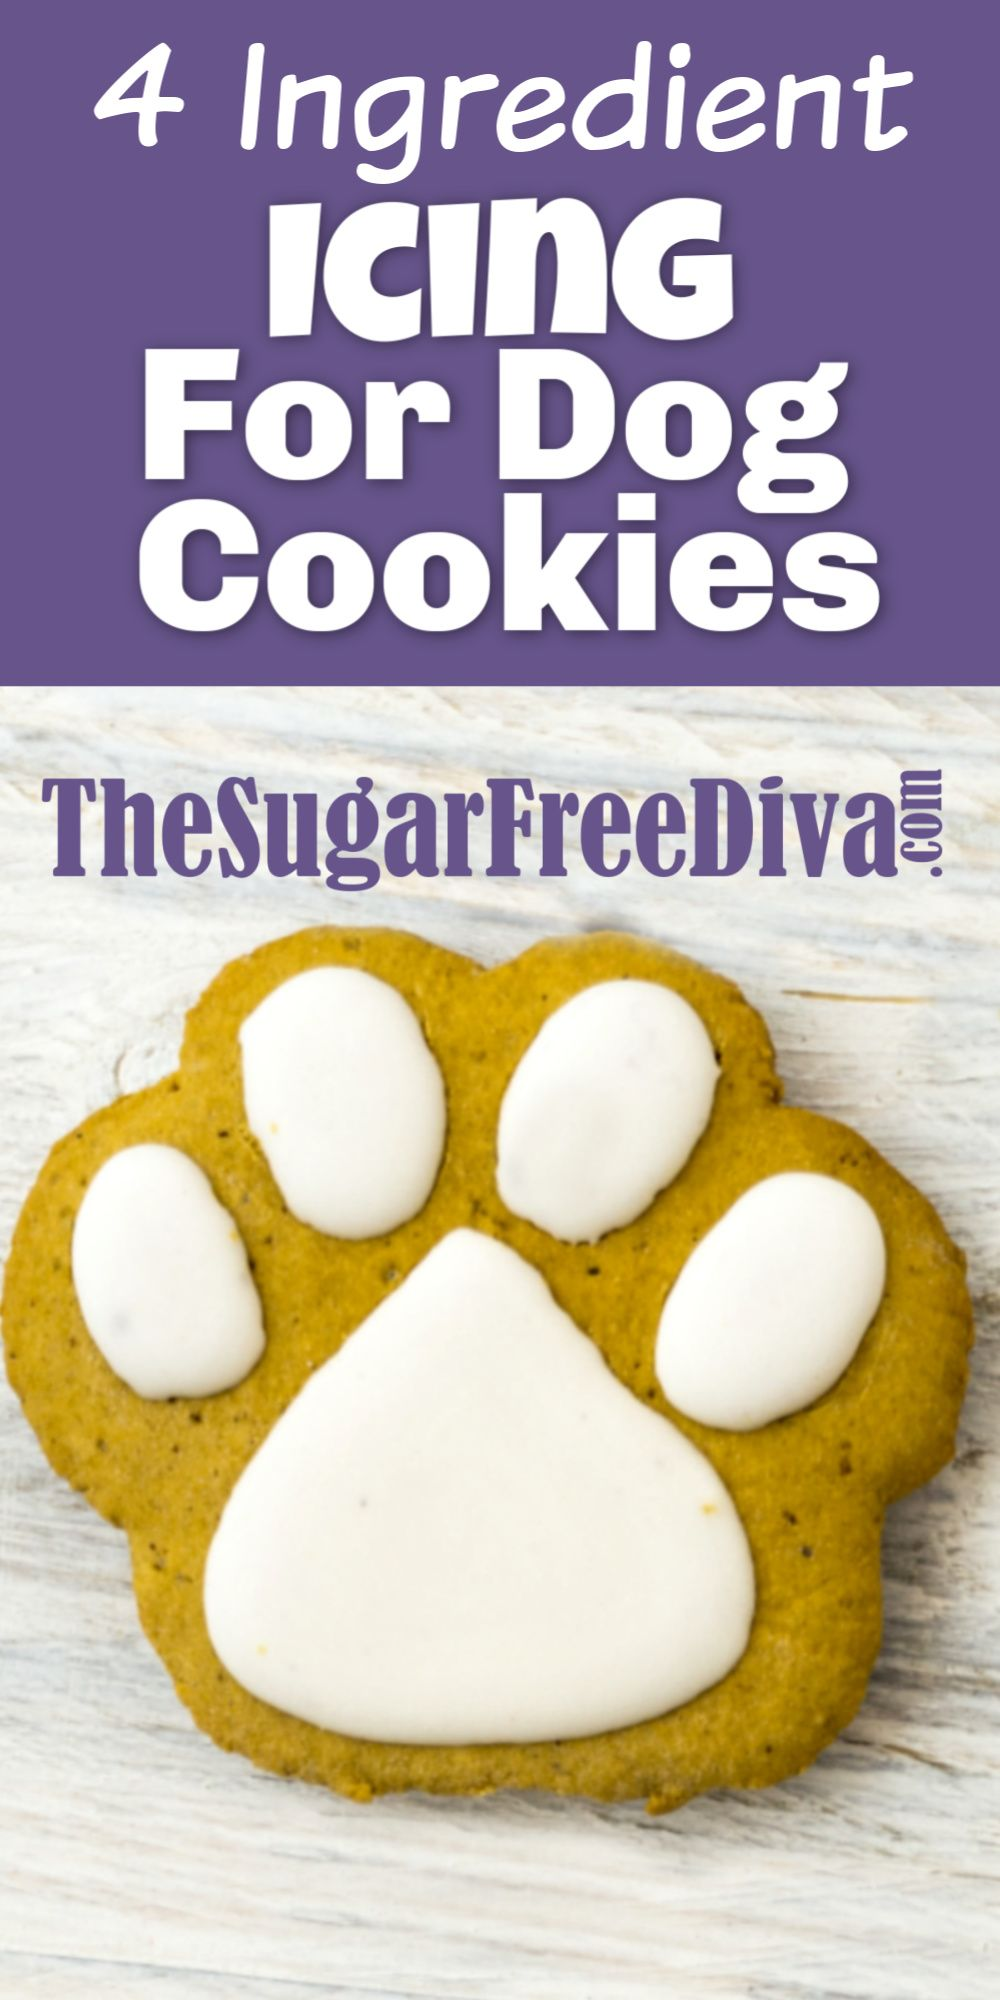 My Dogs Love When I Make Them Yummy Cookies And Treats This